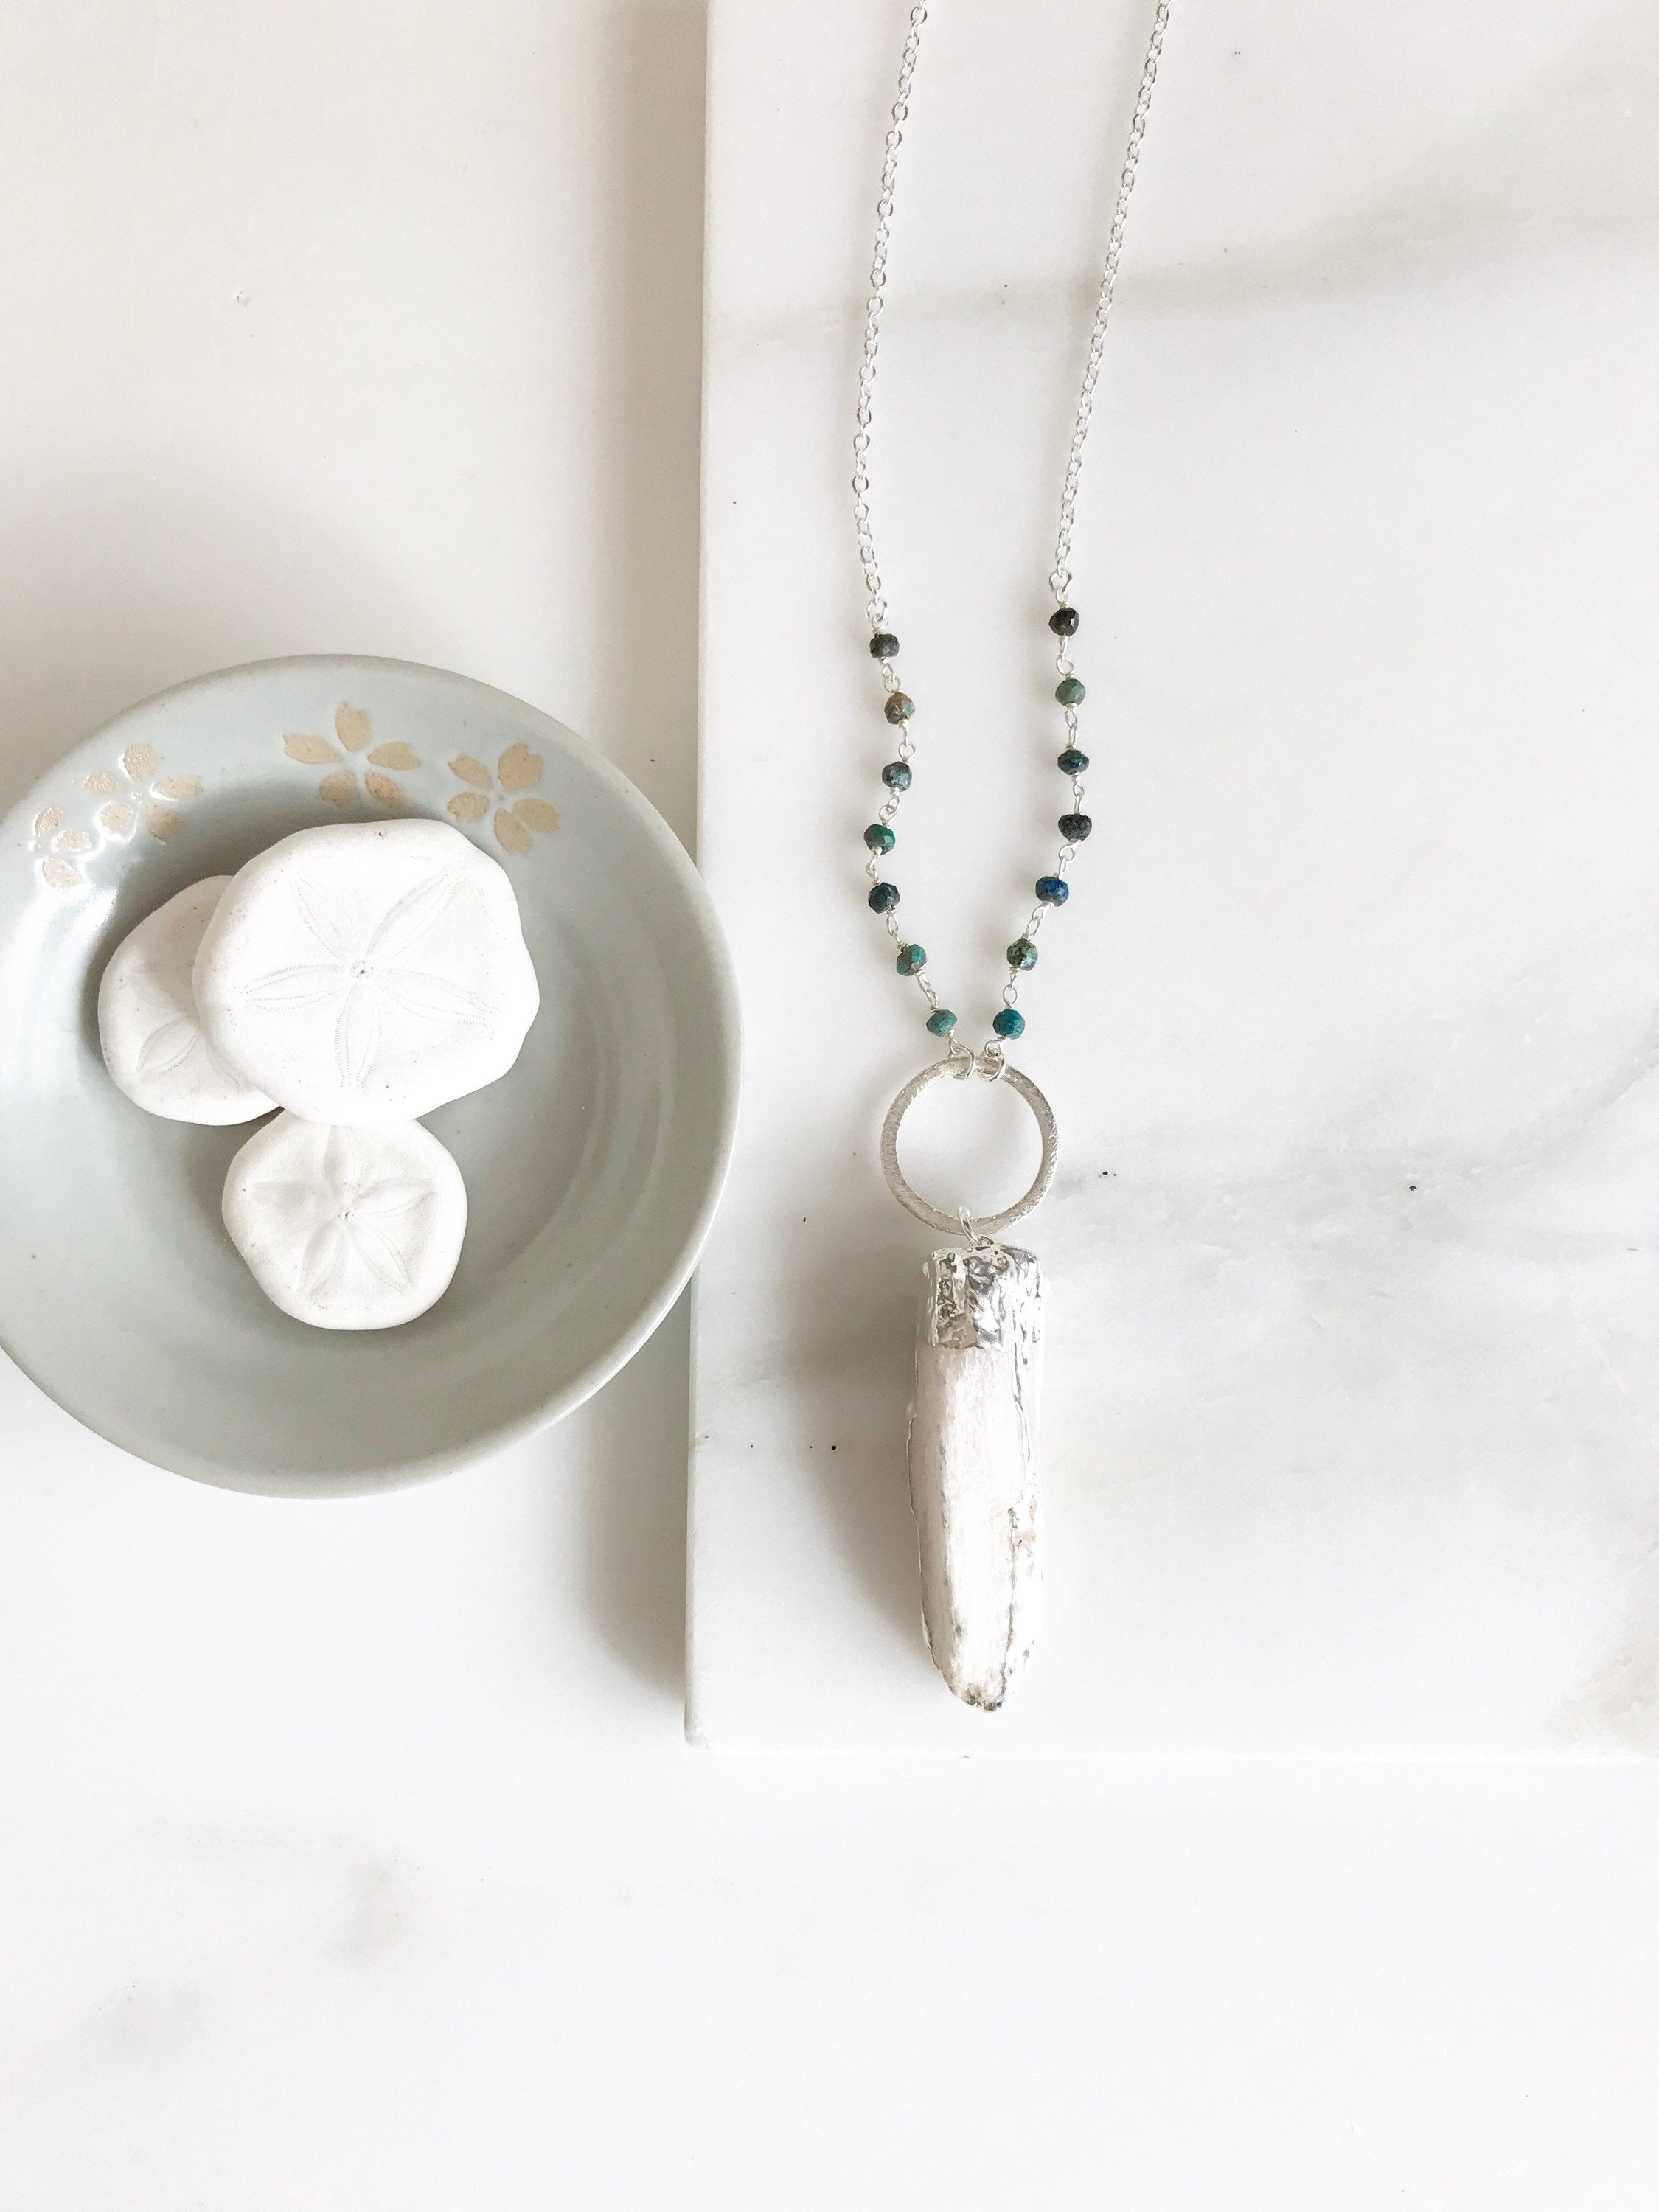 Long Boho Crystal Necklace in Silver. Selenite Stone Circle Necklace with Green Gemstone Beaded Chain. Long Bohemian Necklace. Gift.